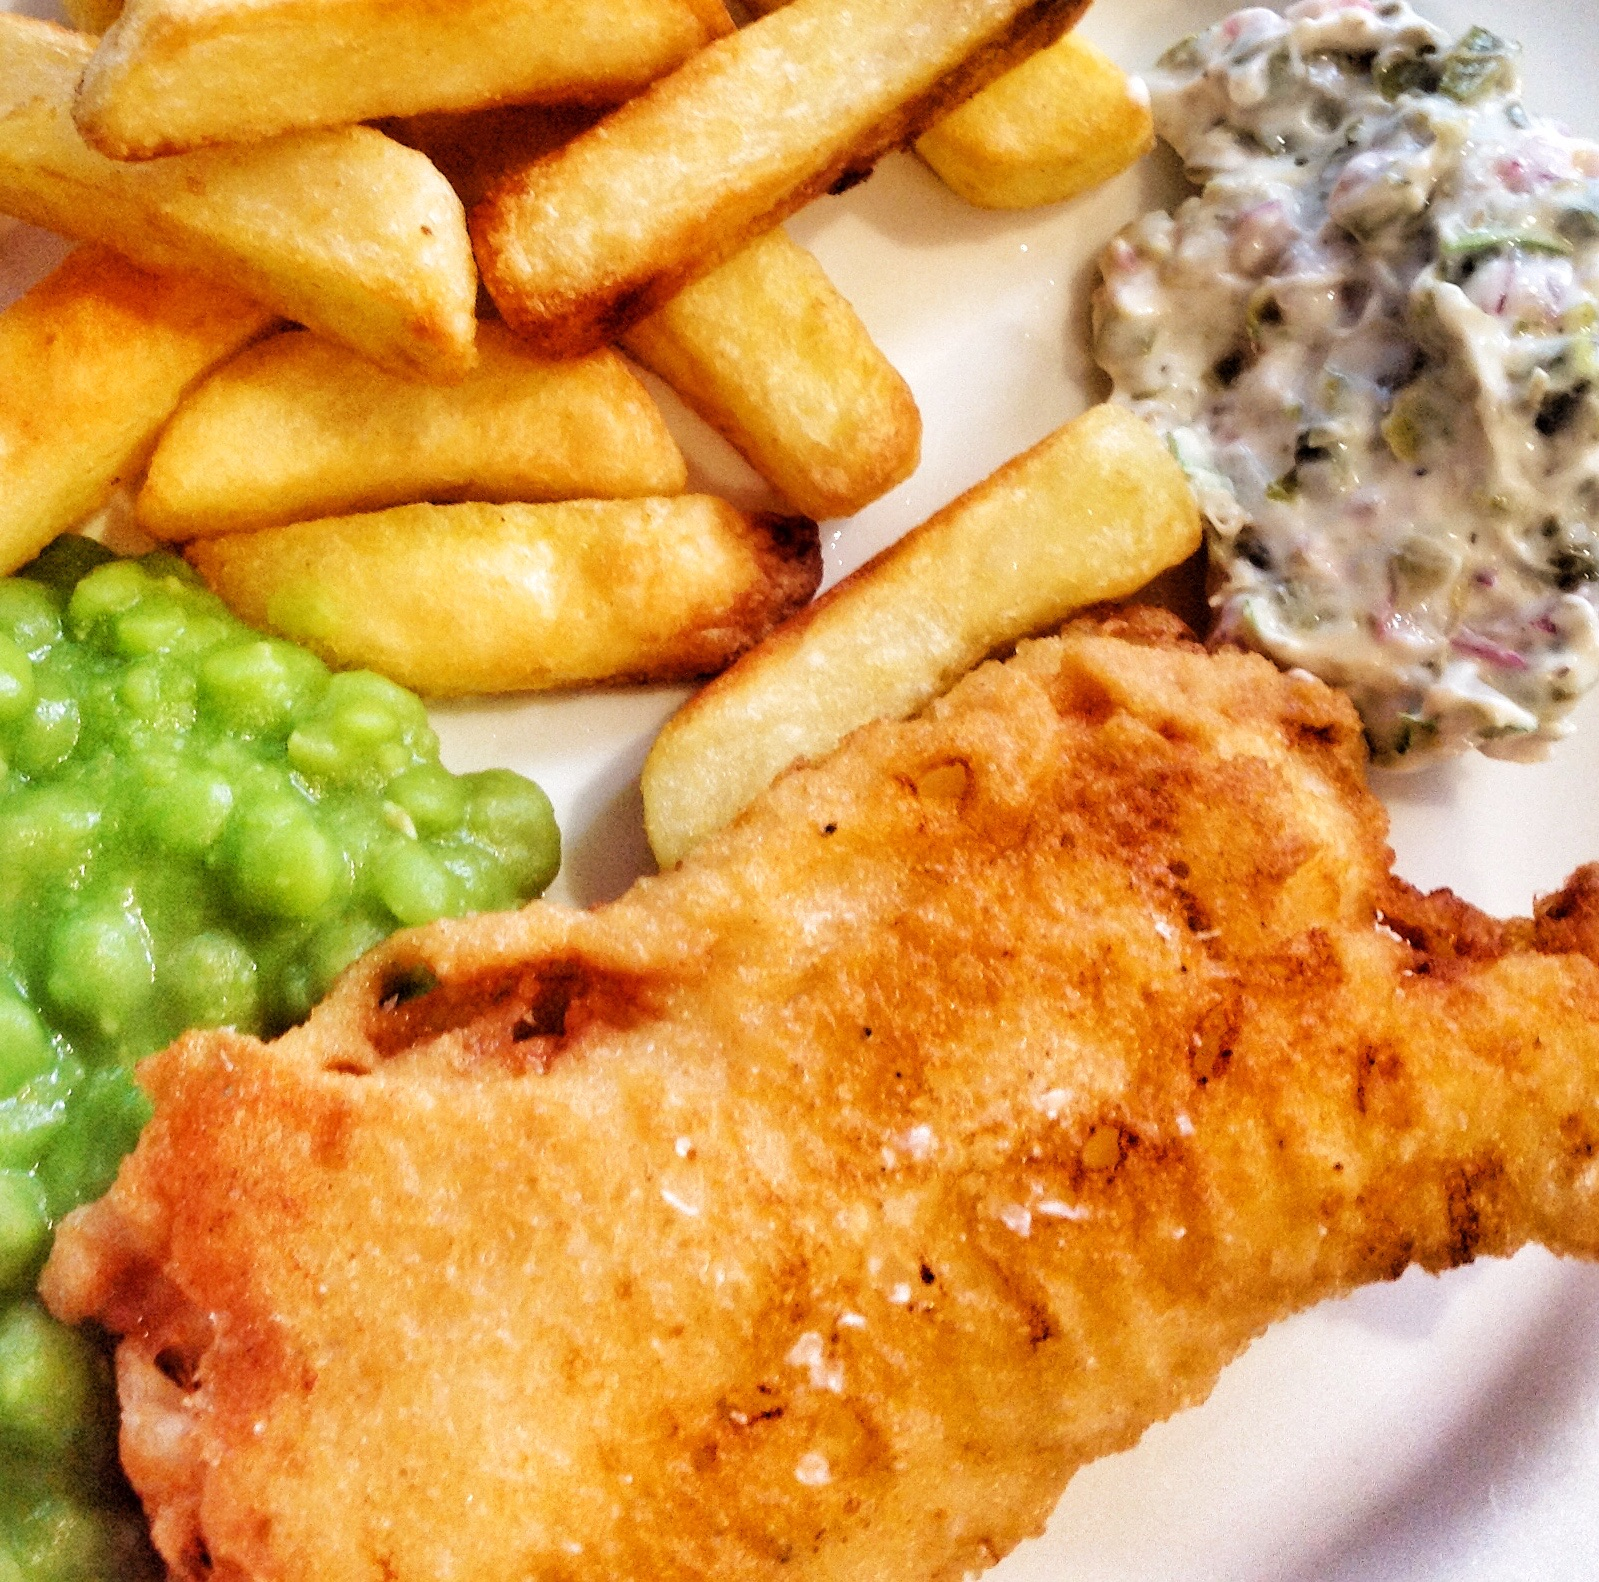 Beer battered fish with tartar sauce the cook twit for Tartar sauce for fish